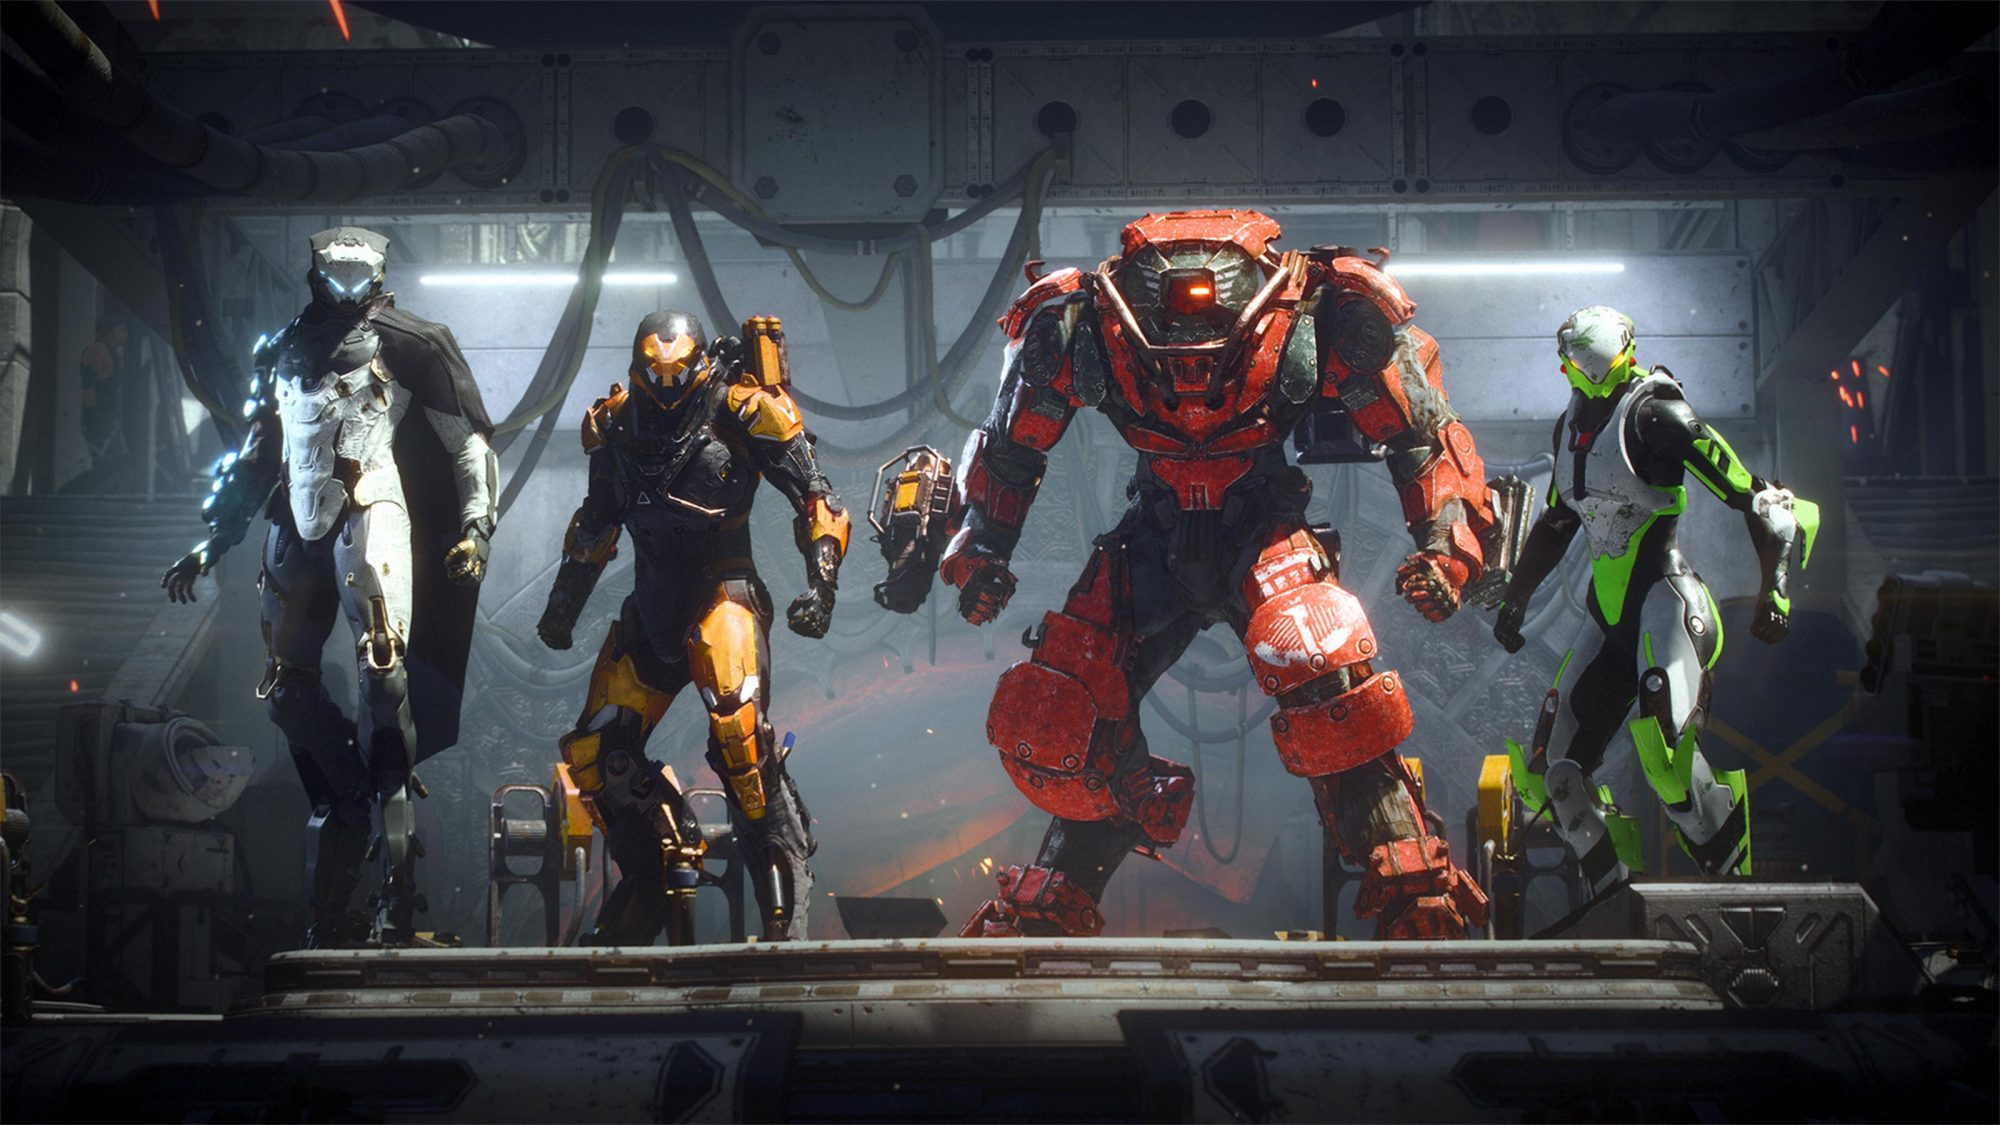 ANTHEM_LAUNCH_SCREENSHOT_05_FINAL_16x9